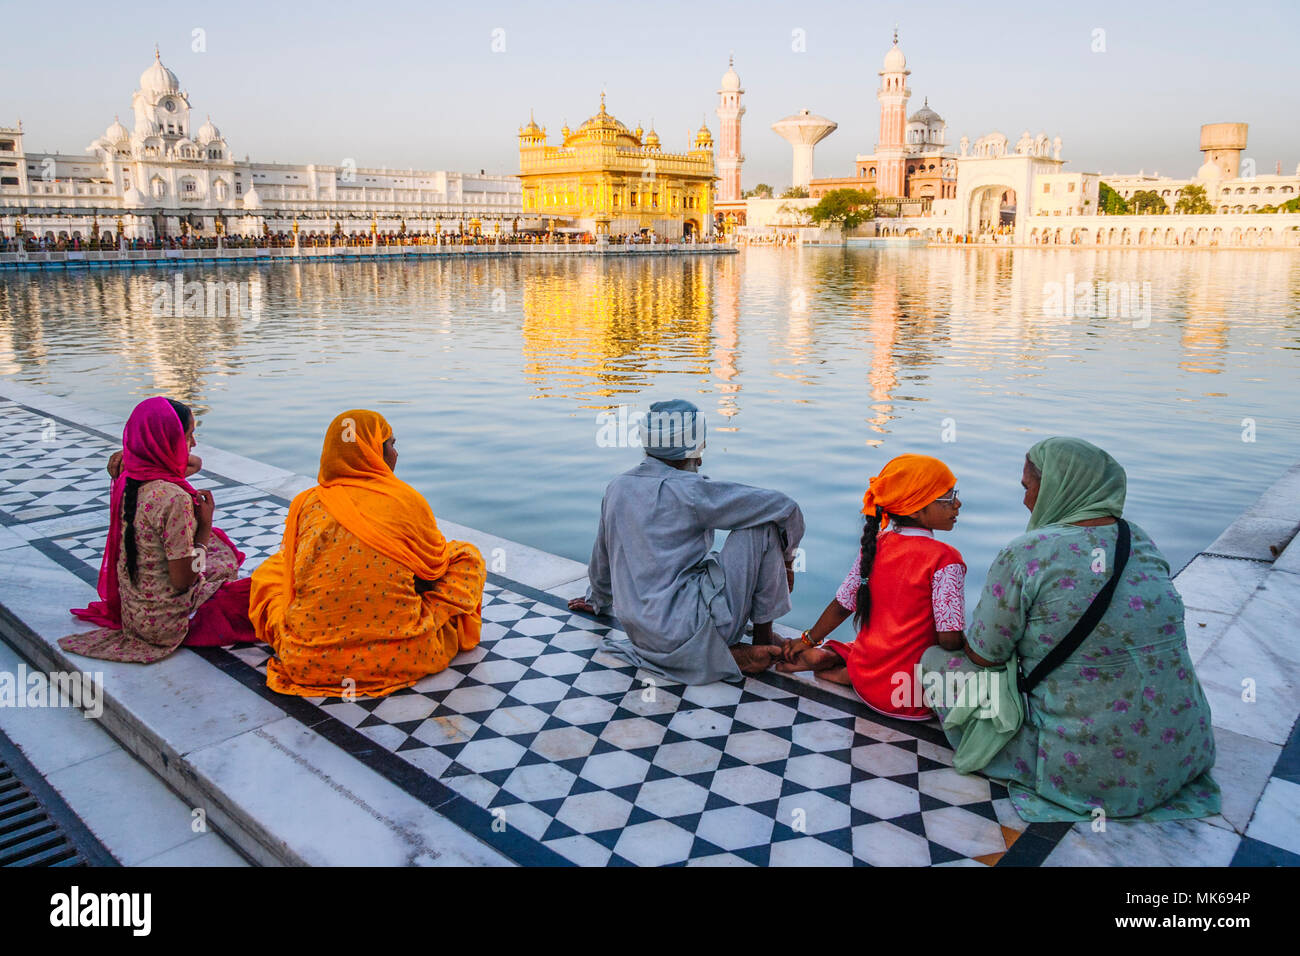 Amritsar, Punjab, India : A Sikh family sits by the pool in the Golden Temple. Stock Photo